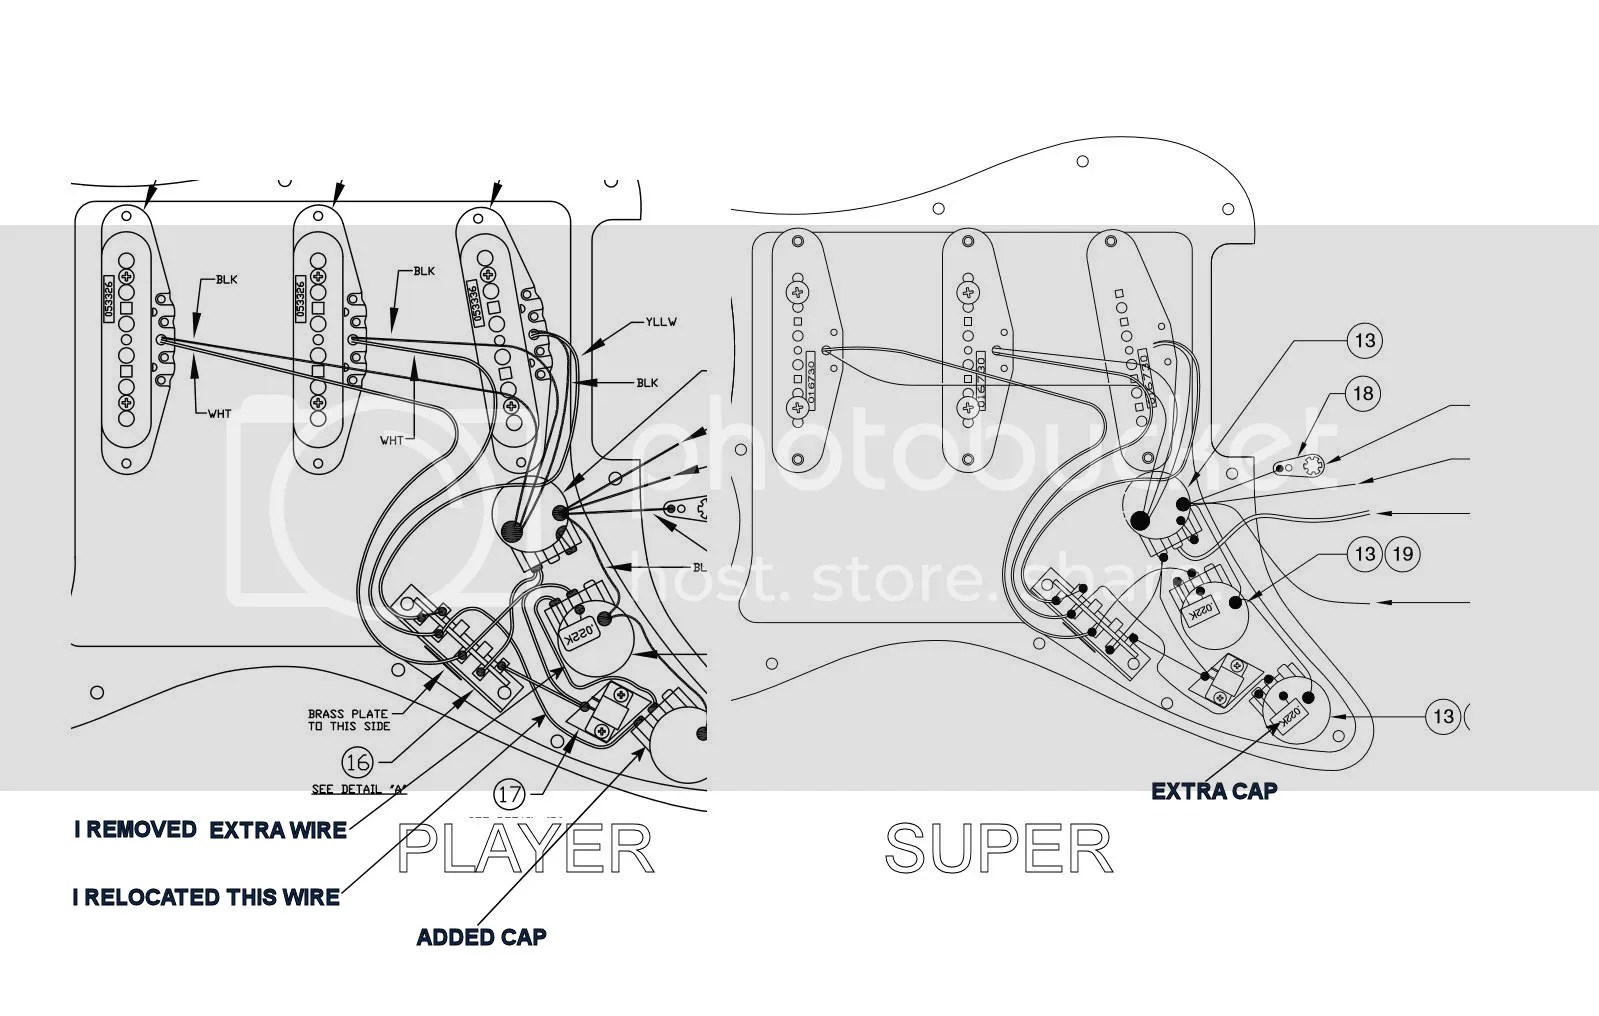 Super Strat Wiring Diagram Single Pickup Guitar Wiring